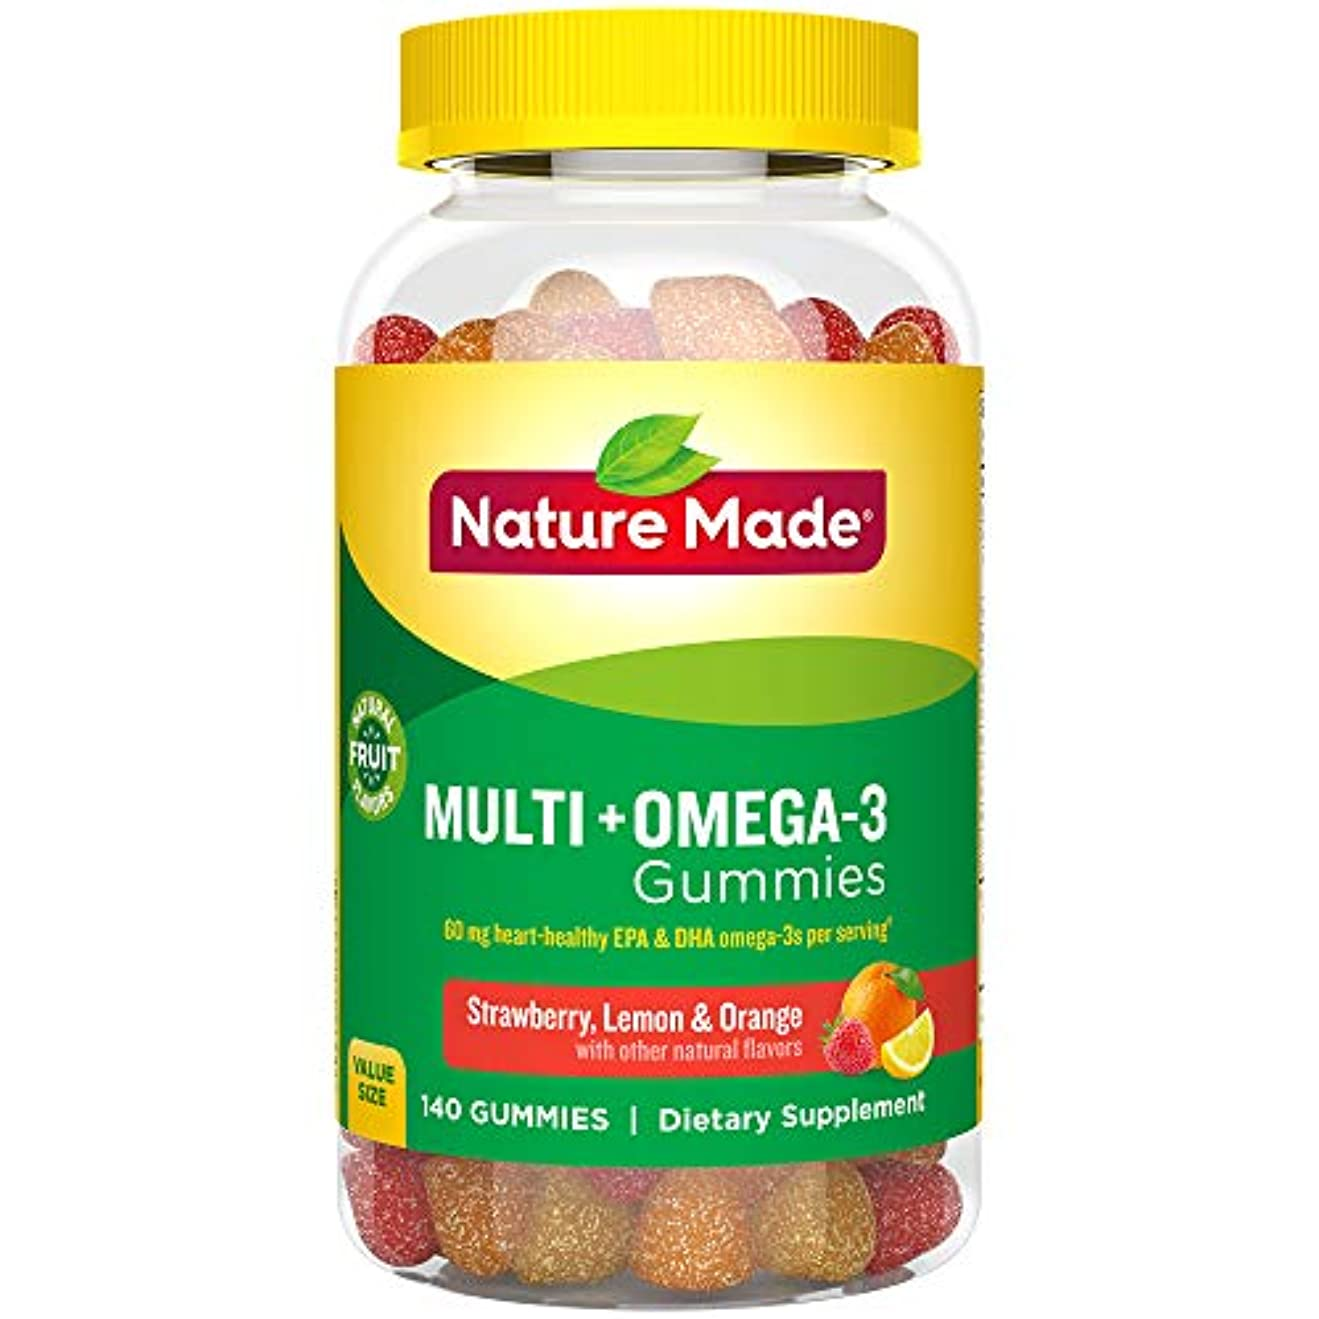 霧深い声を出してダウンタウンNature Made Multi + Omega-3 Adult Gummies (60 mg of DHA & EPA per serving),140粒